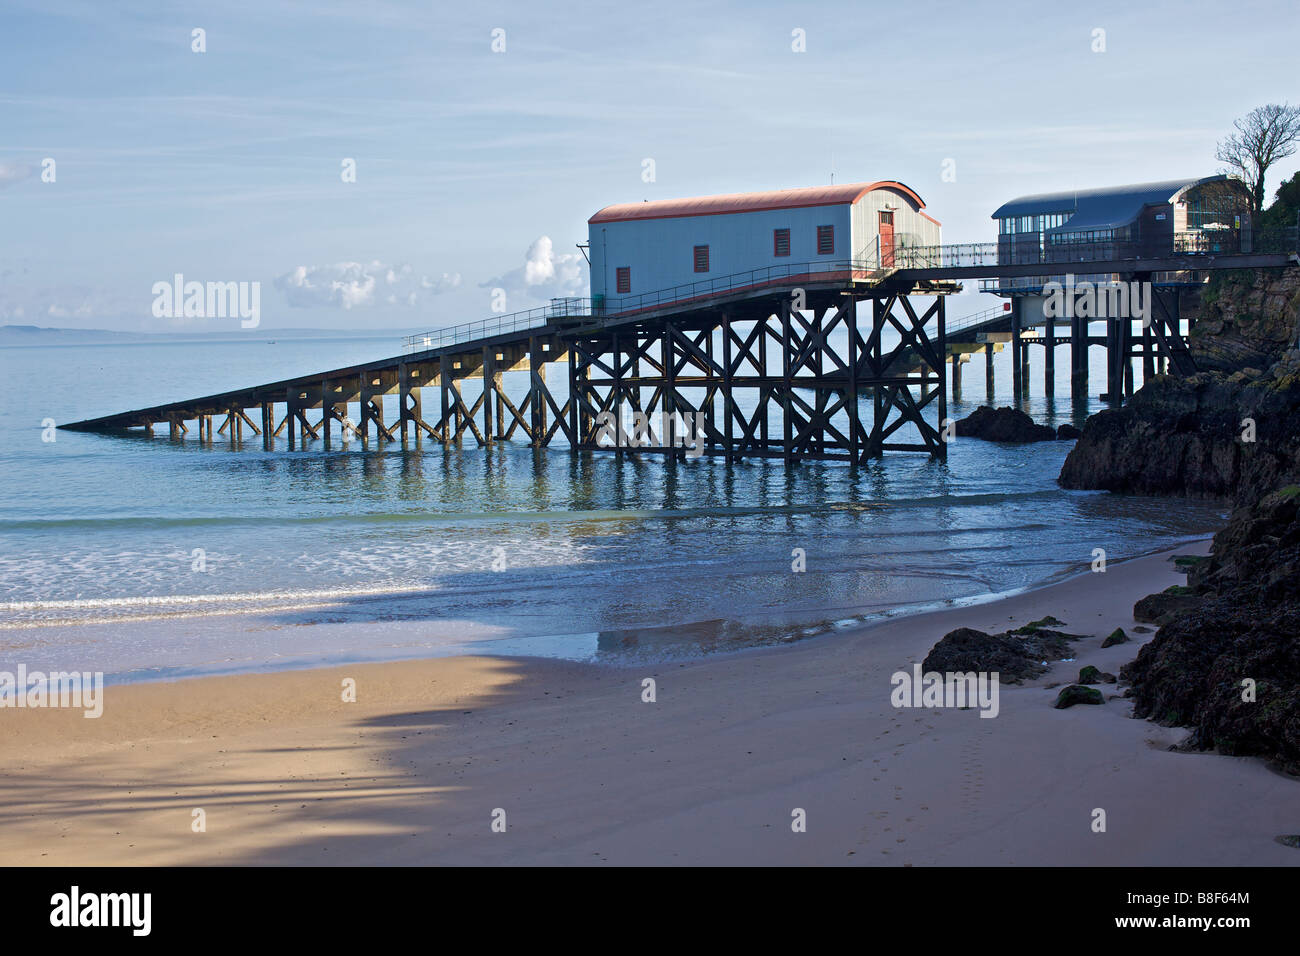 Old Tenby Lifeboat station in Wales - Stock Image